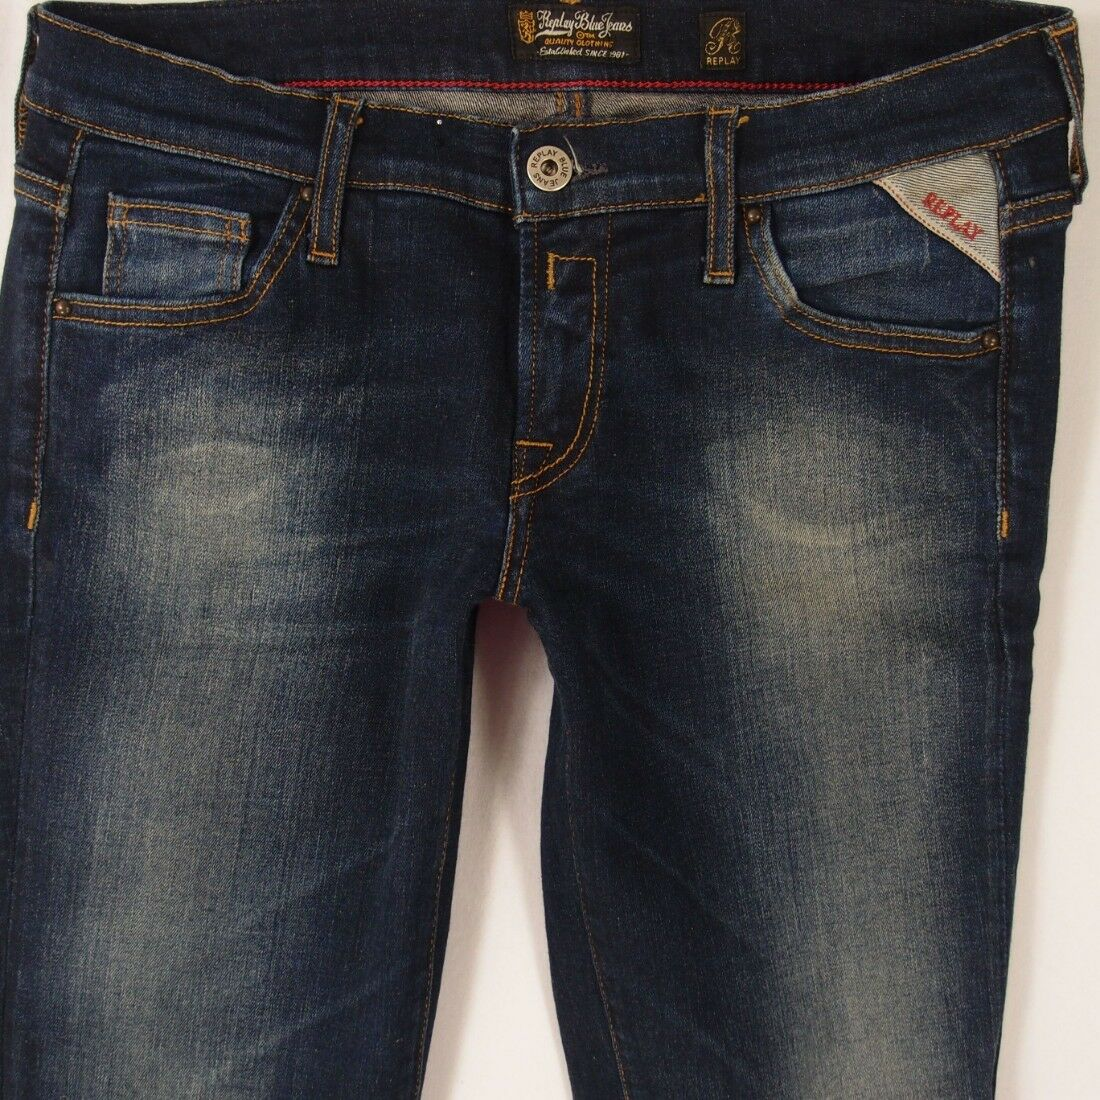 Ladies Womens Replay W44 WENDIE Stretch Bootcut bluee Jeans W28 L32 UK Size 8